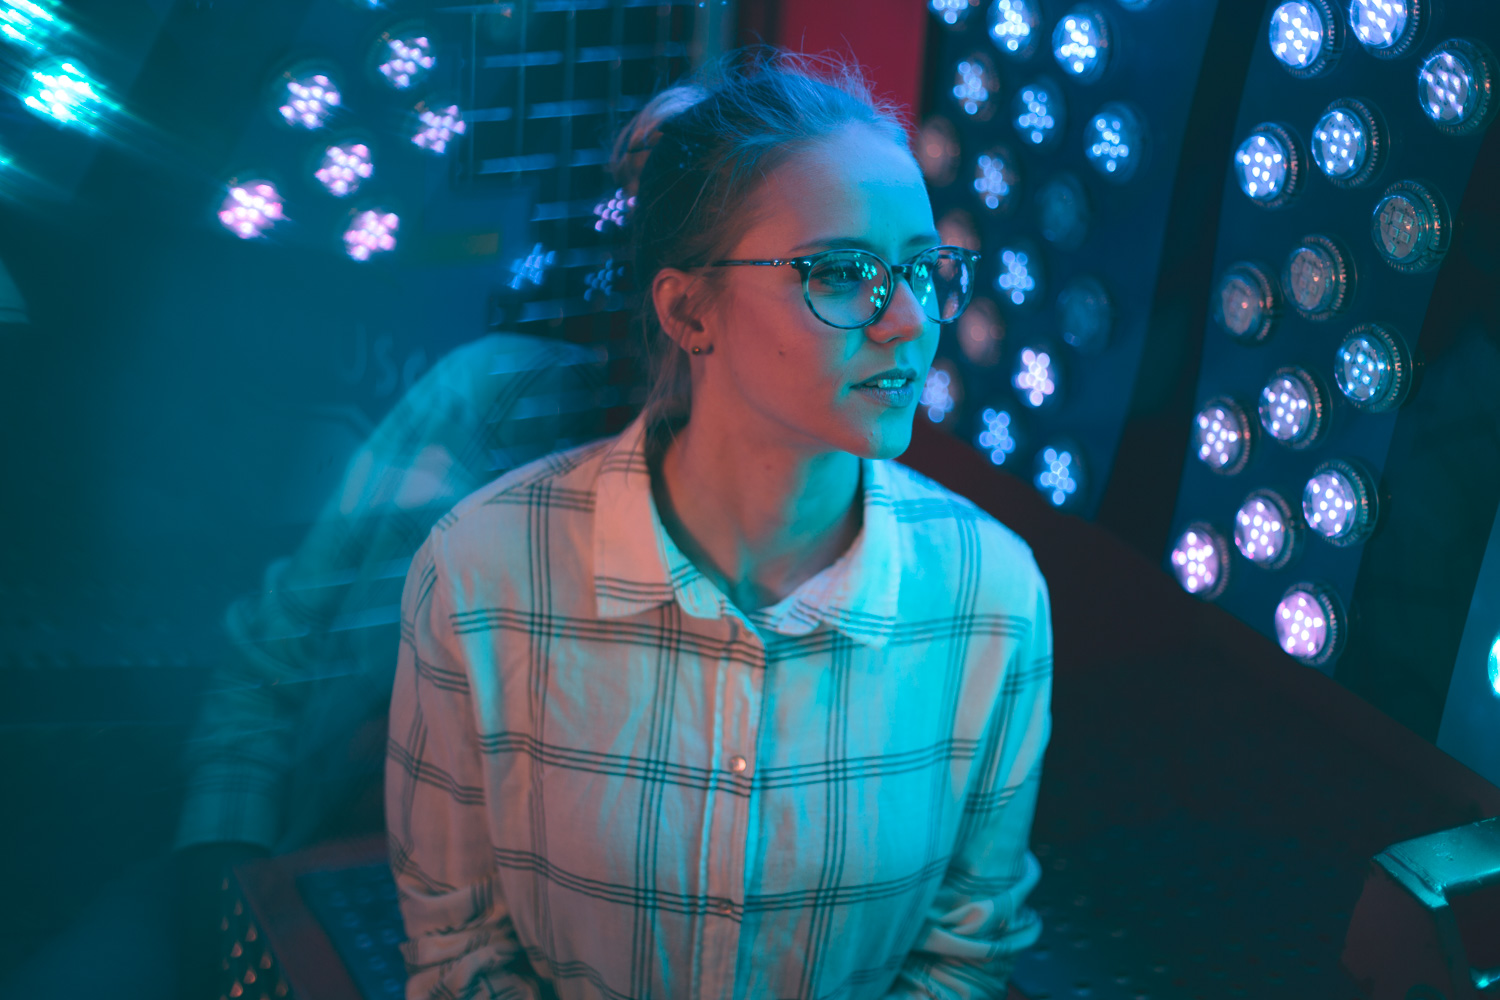 Model in Neon Licht im Stil von Brandon Woelfel